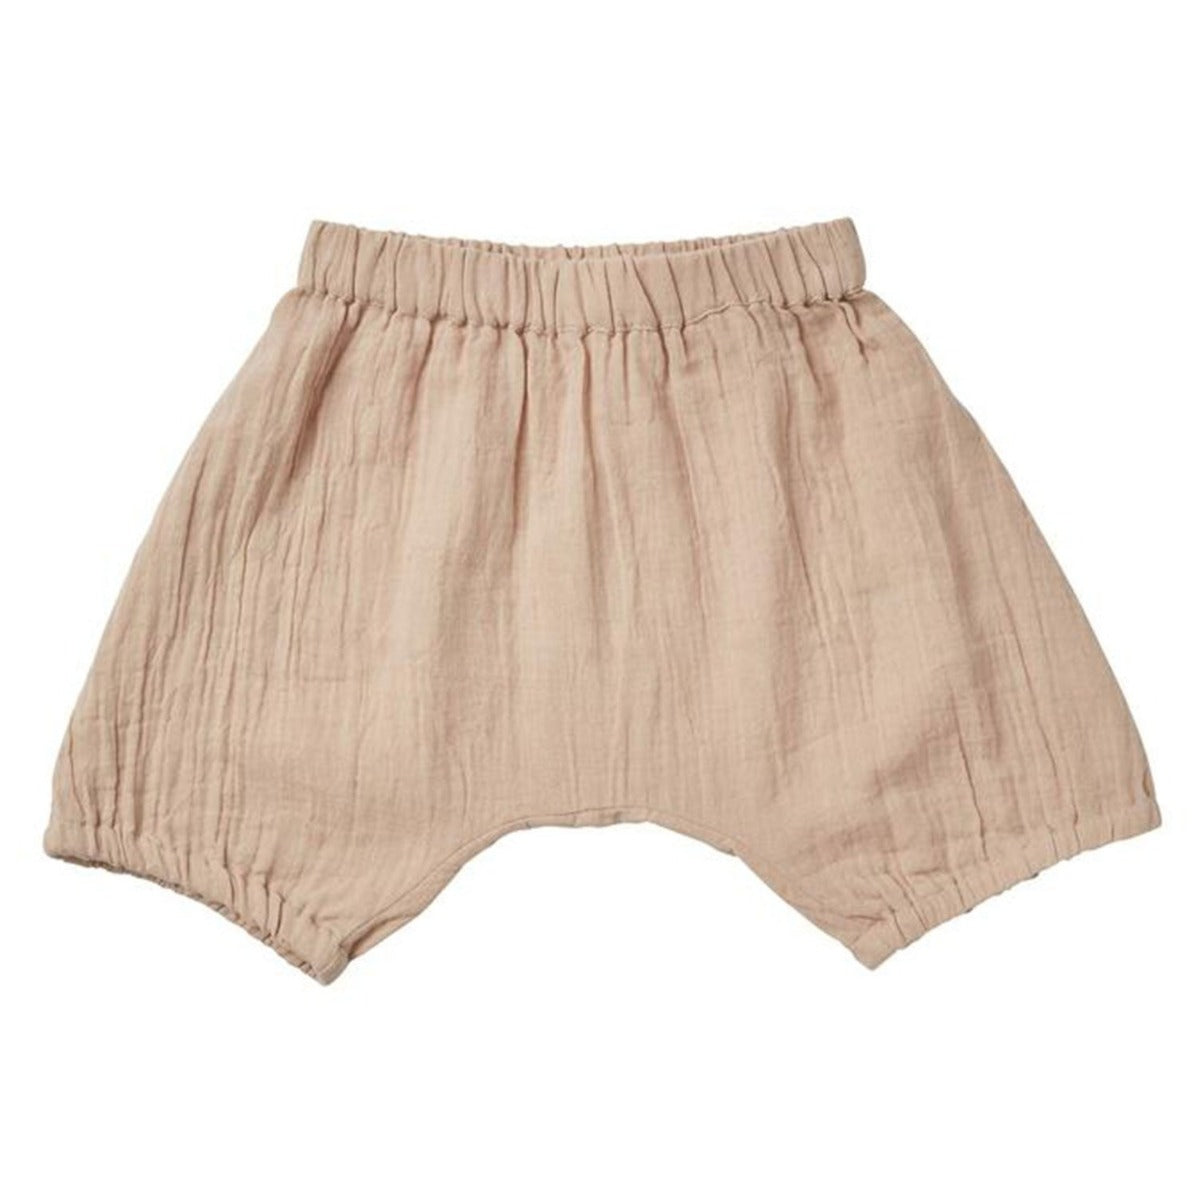 US Stockist of Ruffets & Co Blush Pink Cotton Gauze Bloomers